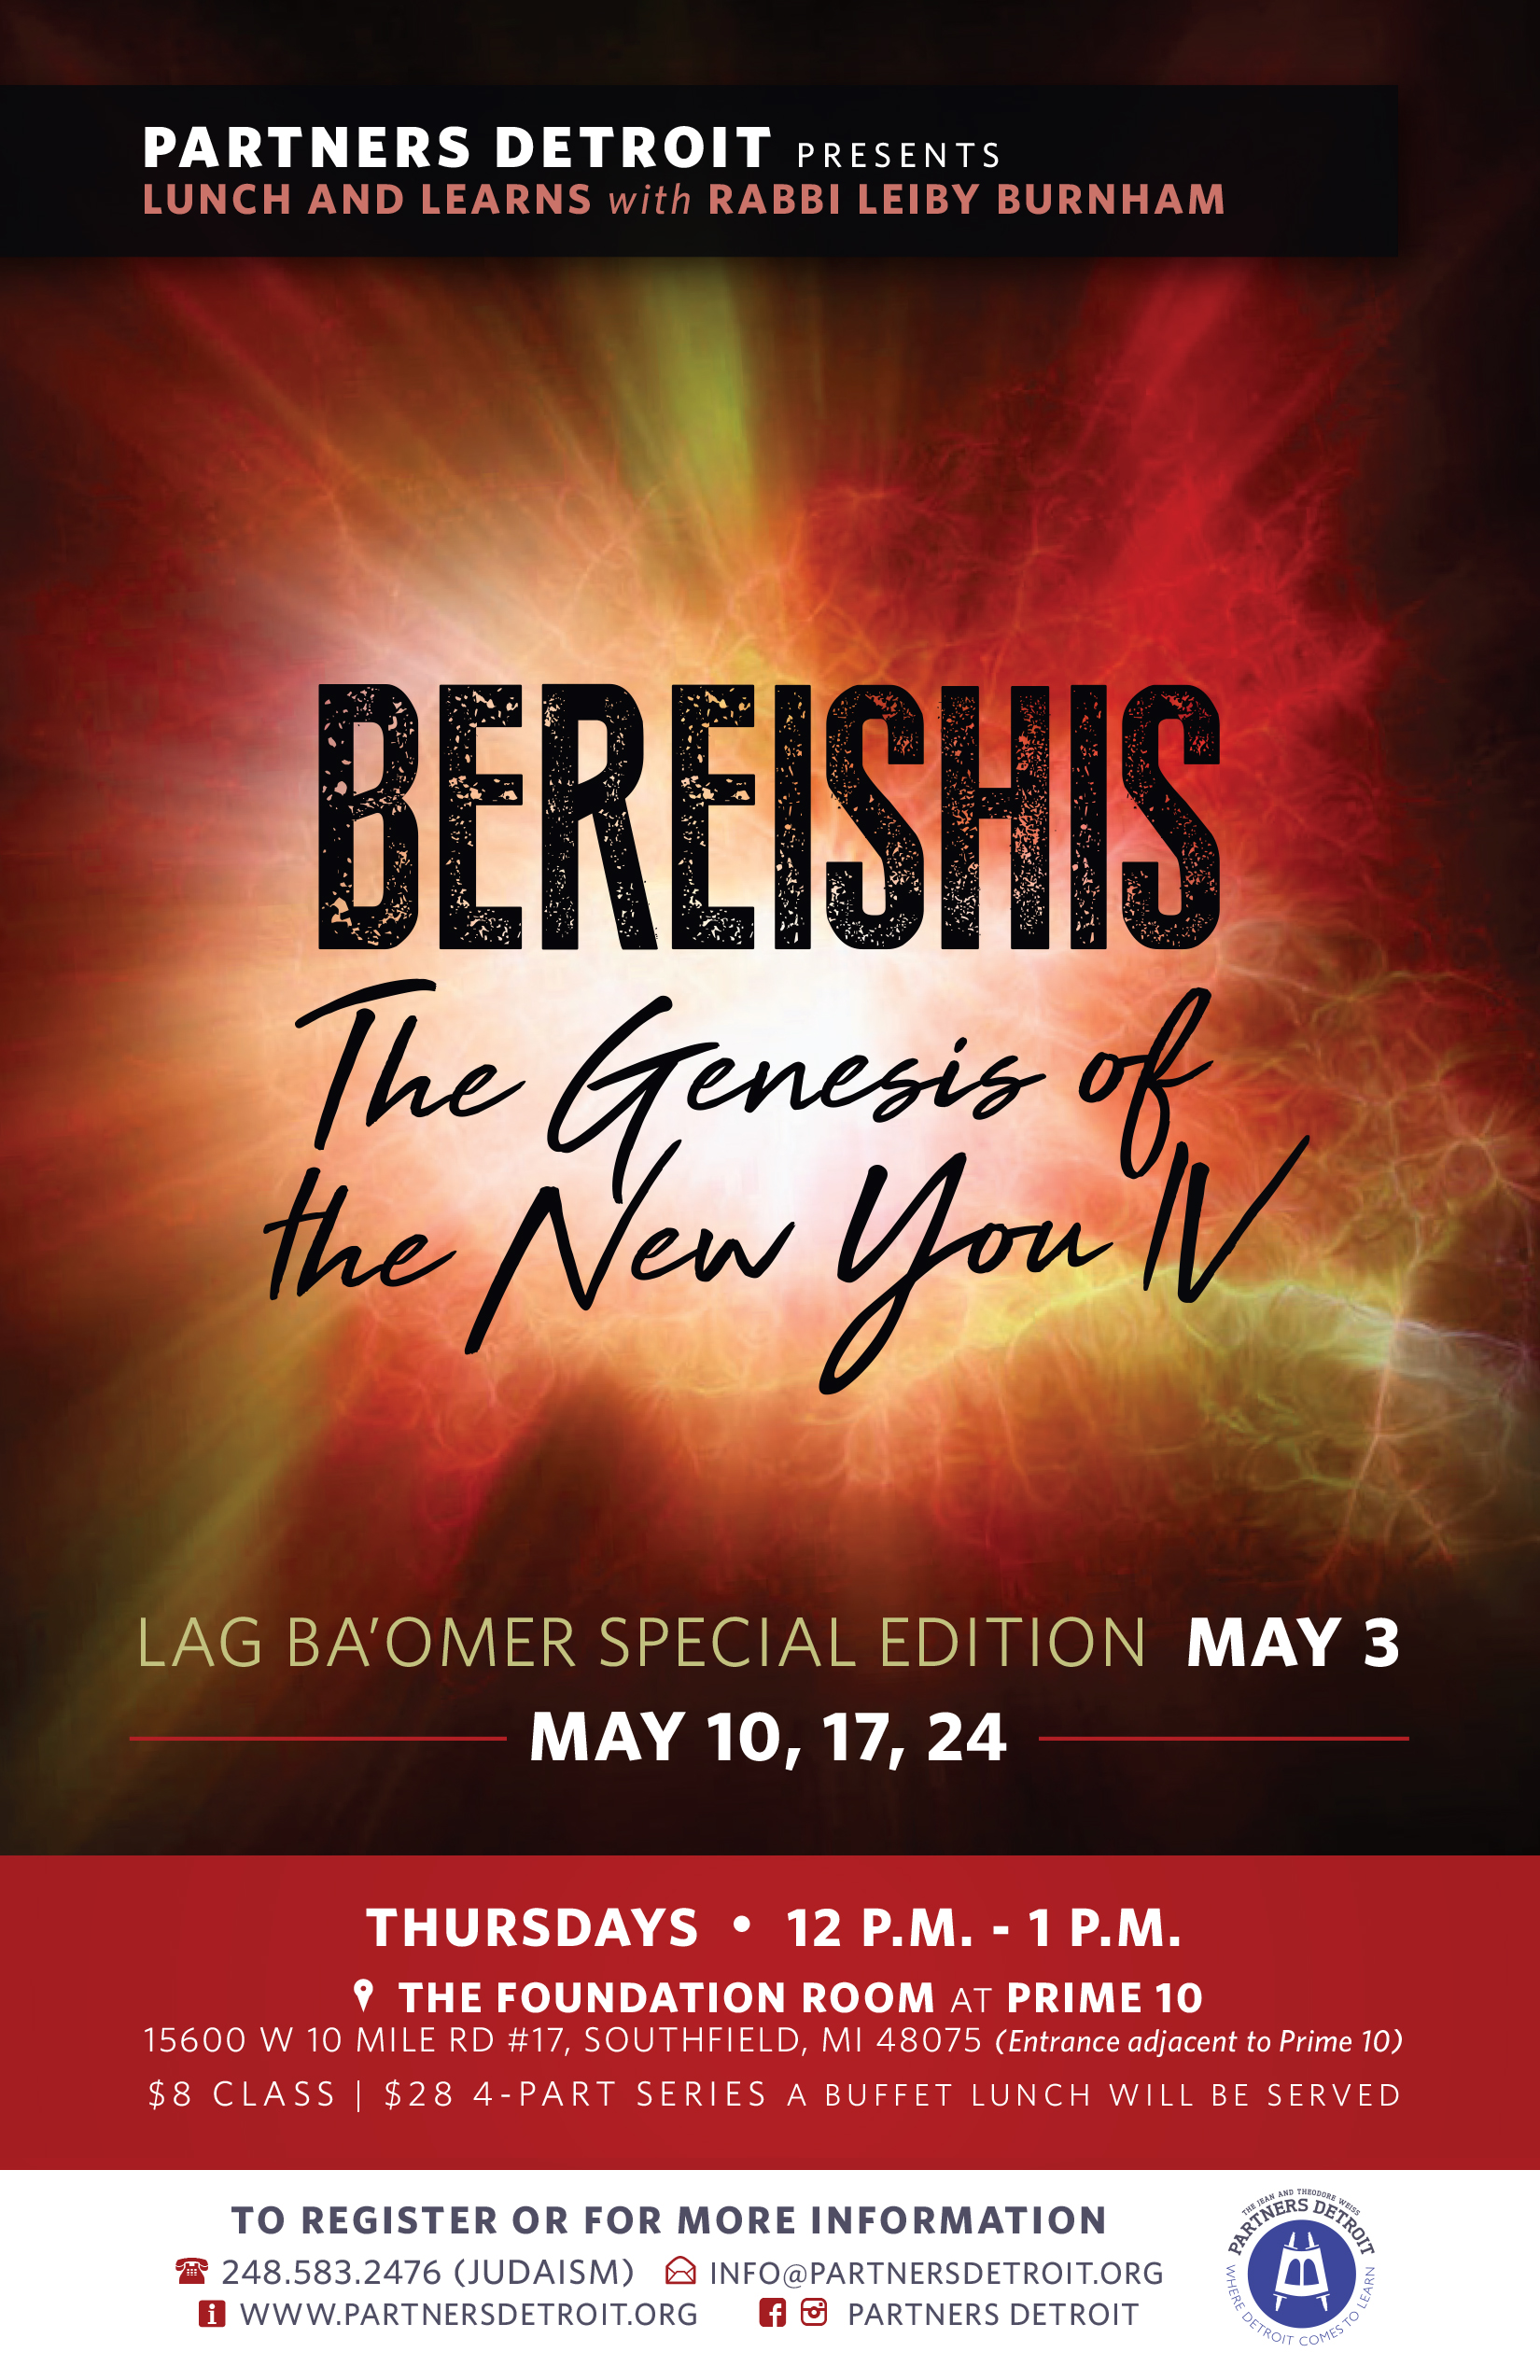 Bereishis: The Genesis of the New You IV Lunch 'n Learn